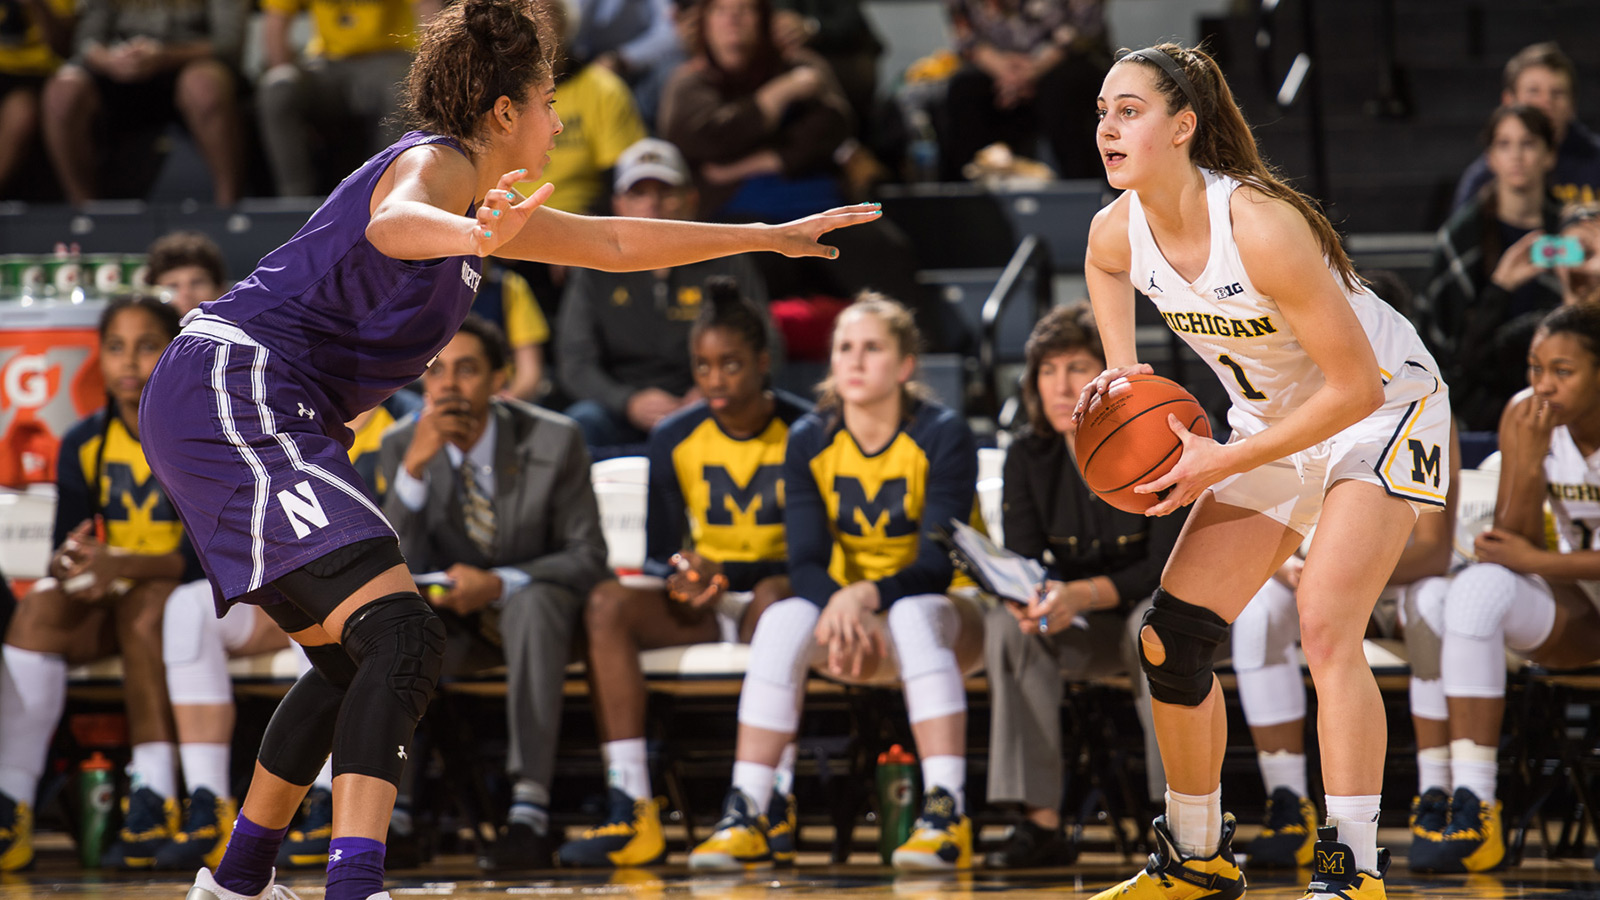 c8081435a002fe Wolverines Grind Out Overtime Win Over Wildcats - University of ...